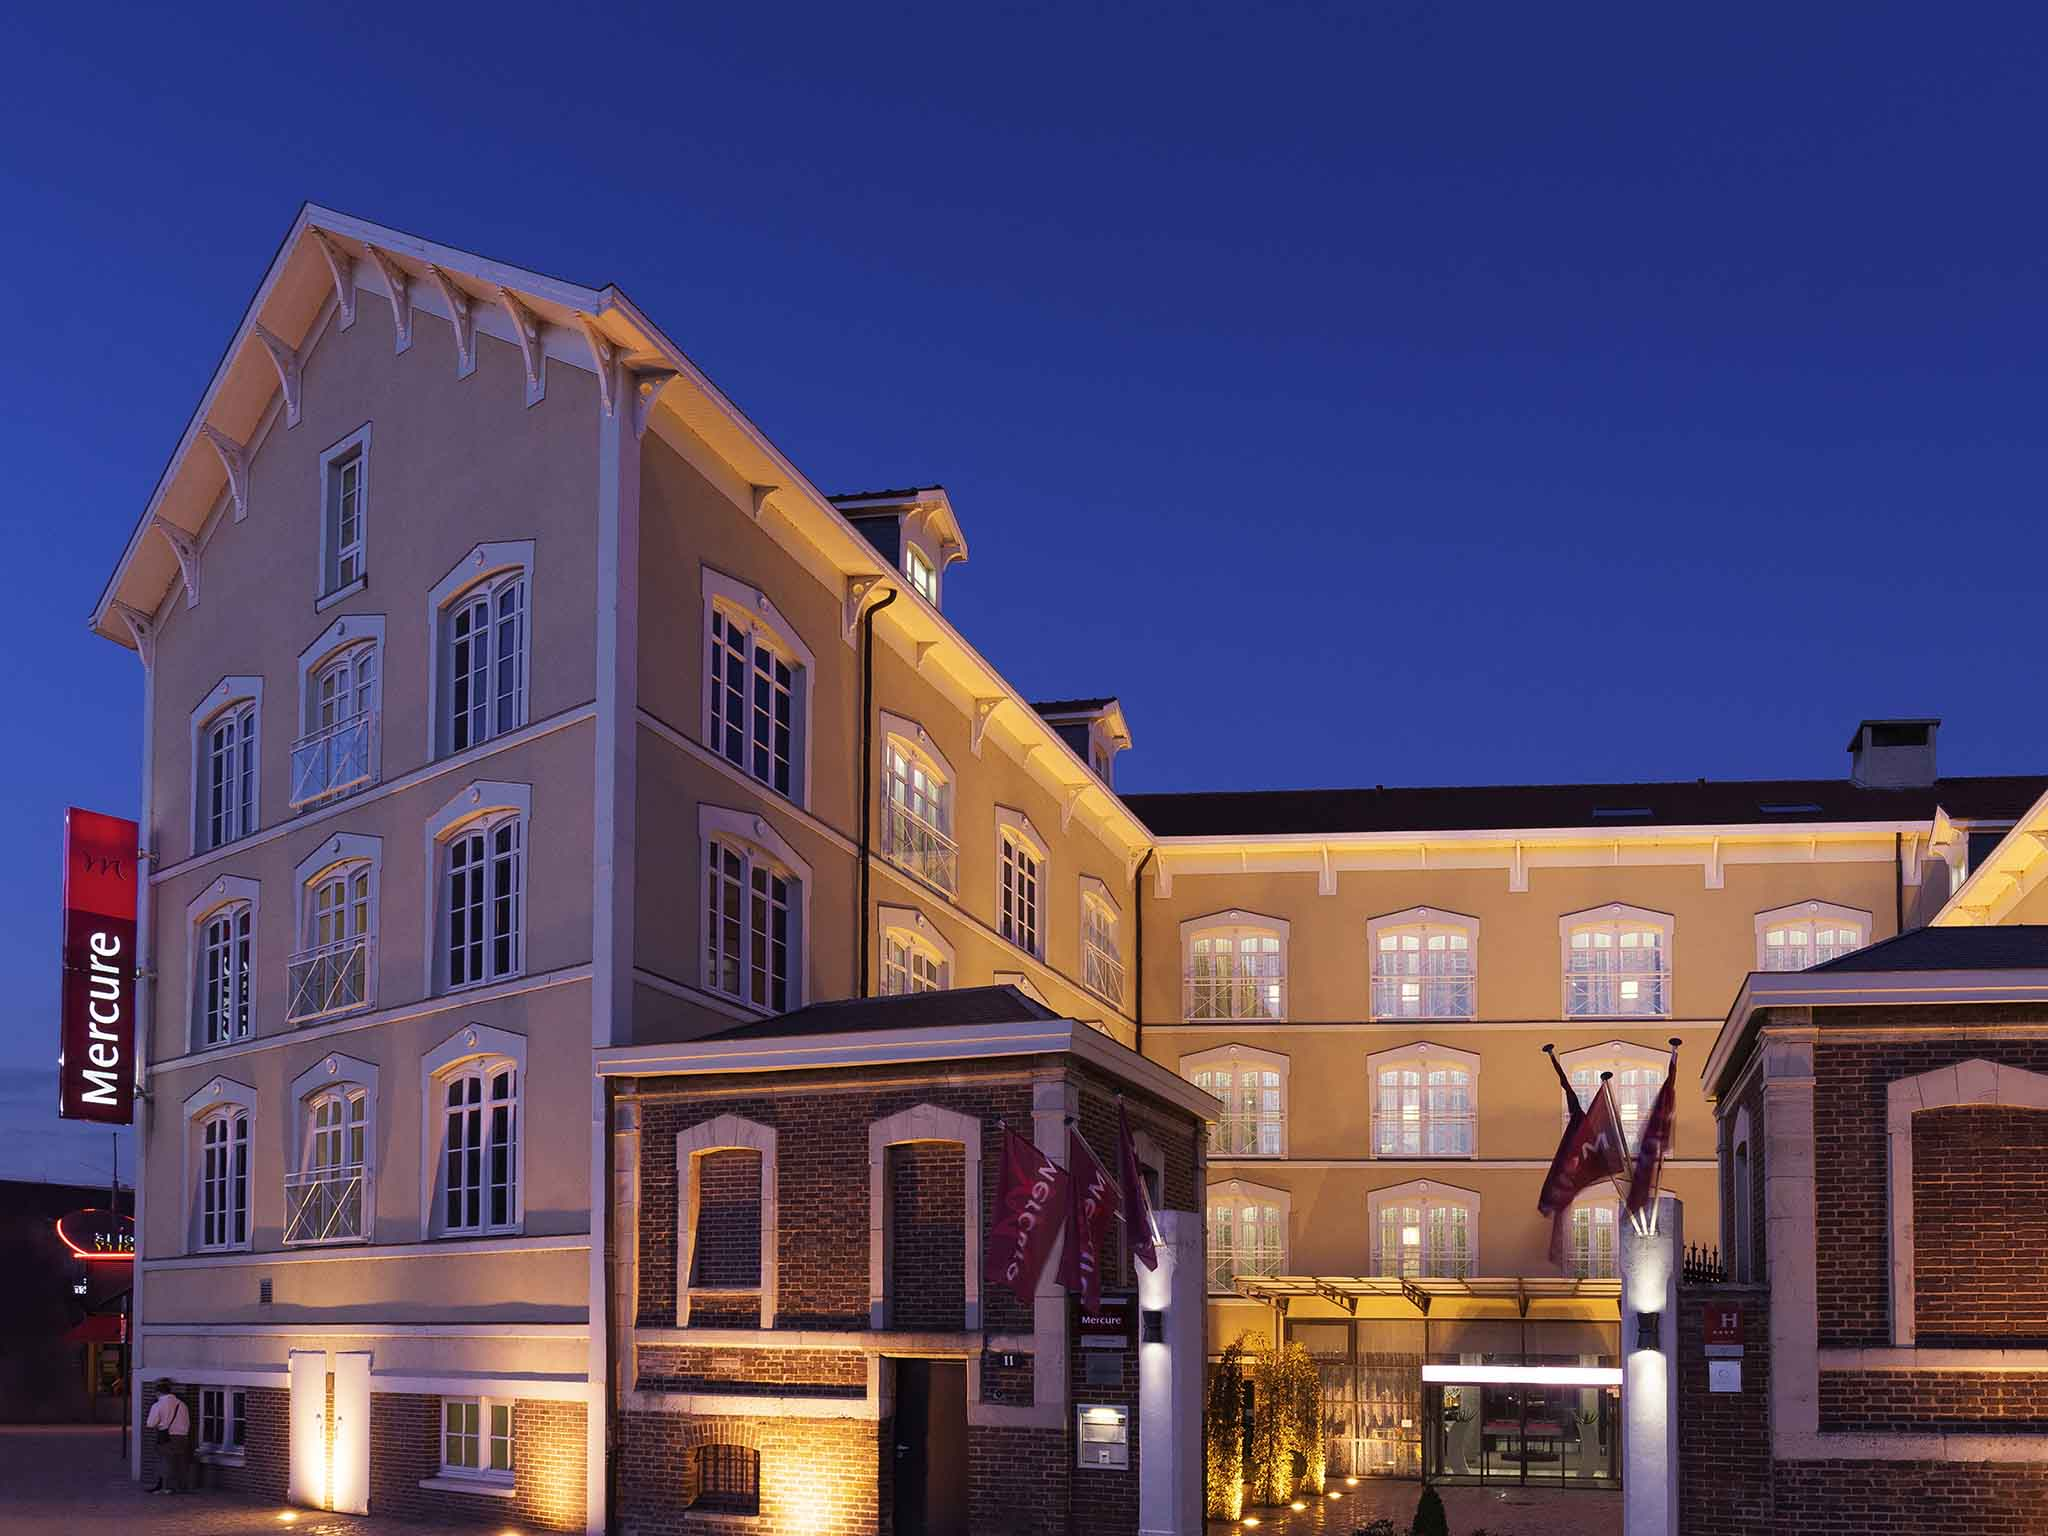 Hotel – Hotel Mercure Troyes Centre